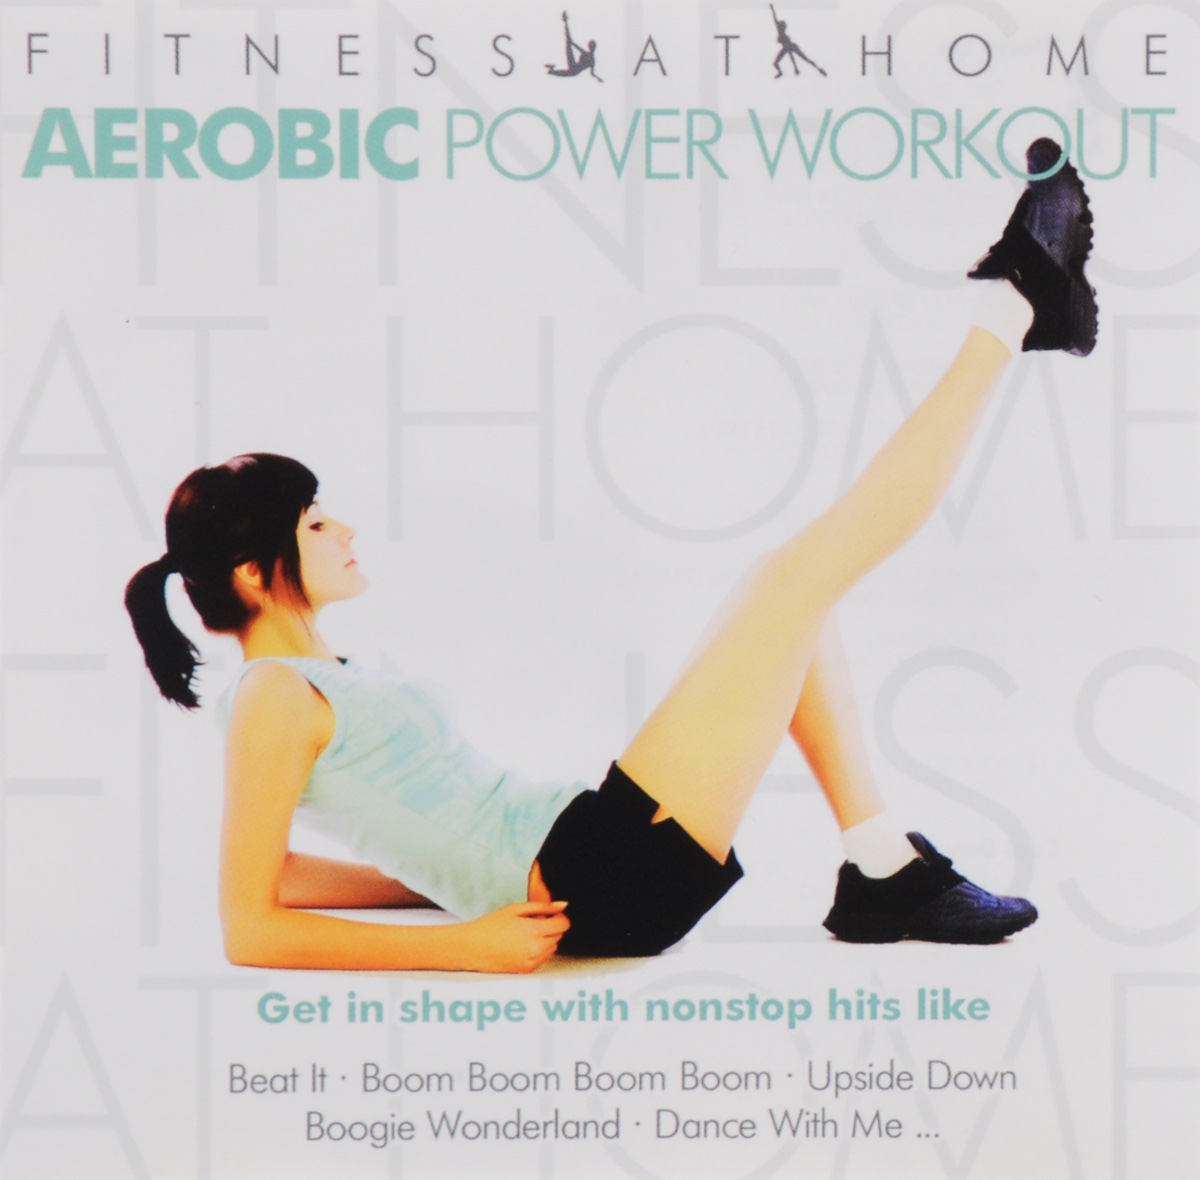 Fitness At Home. Aerobic Power Workout (2 CD)